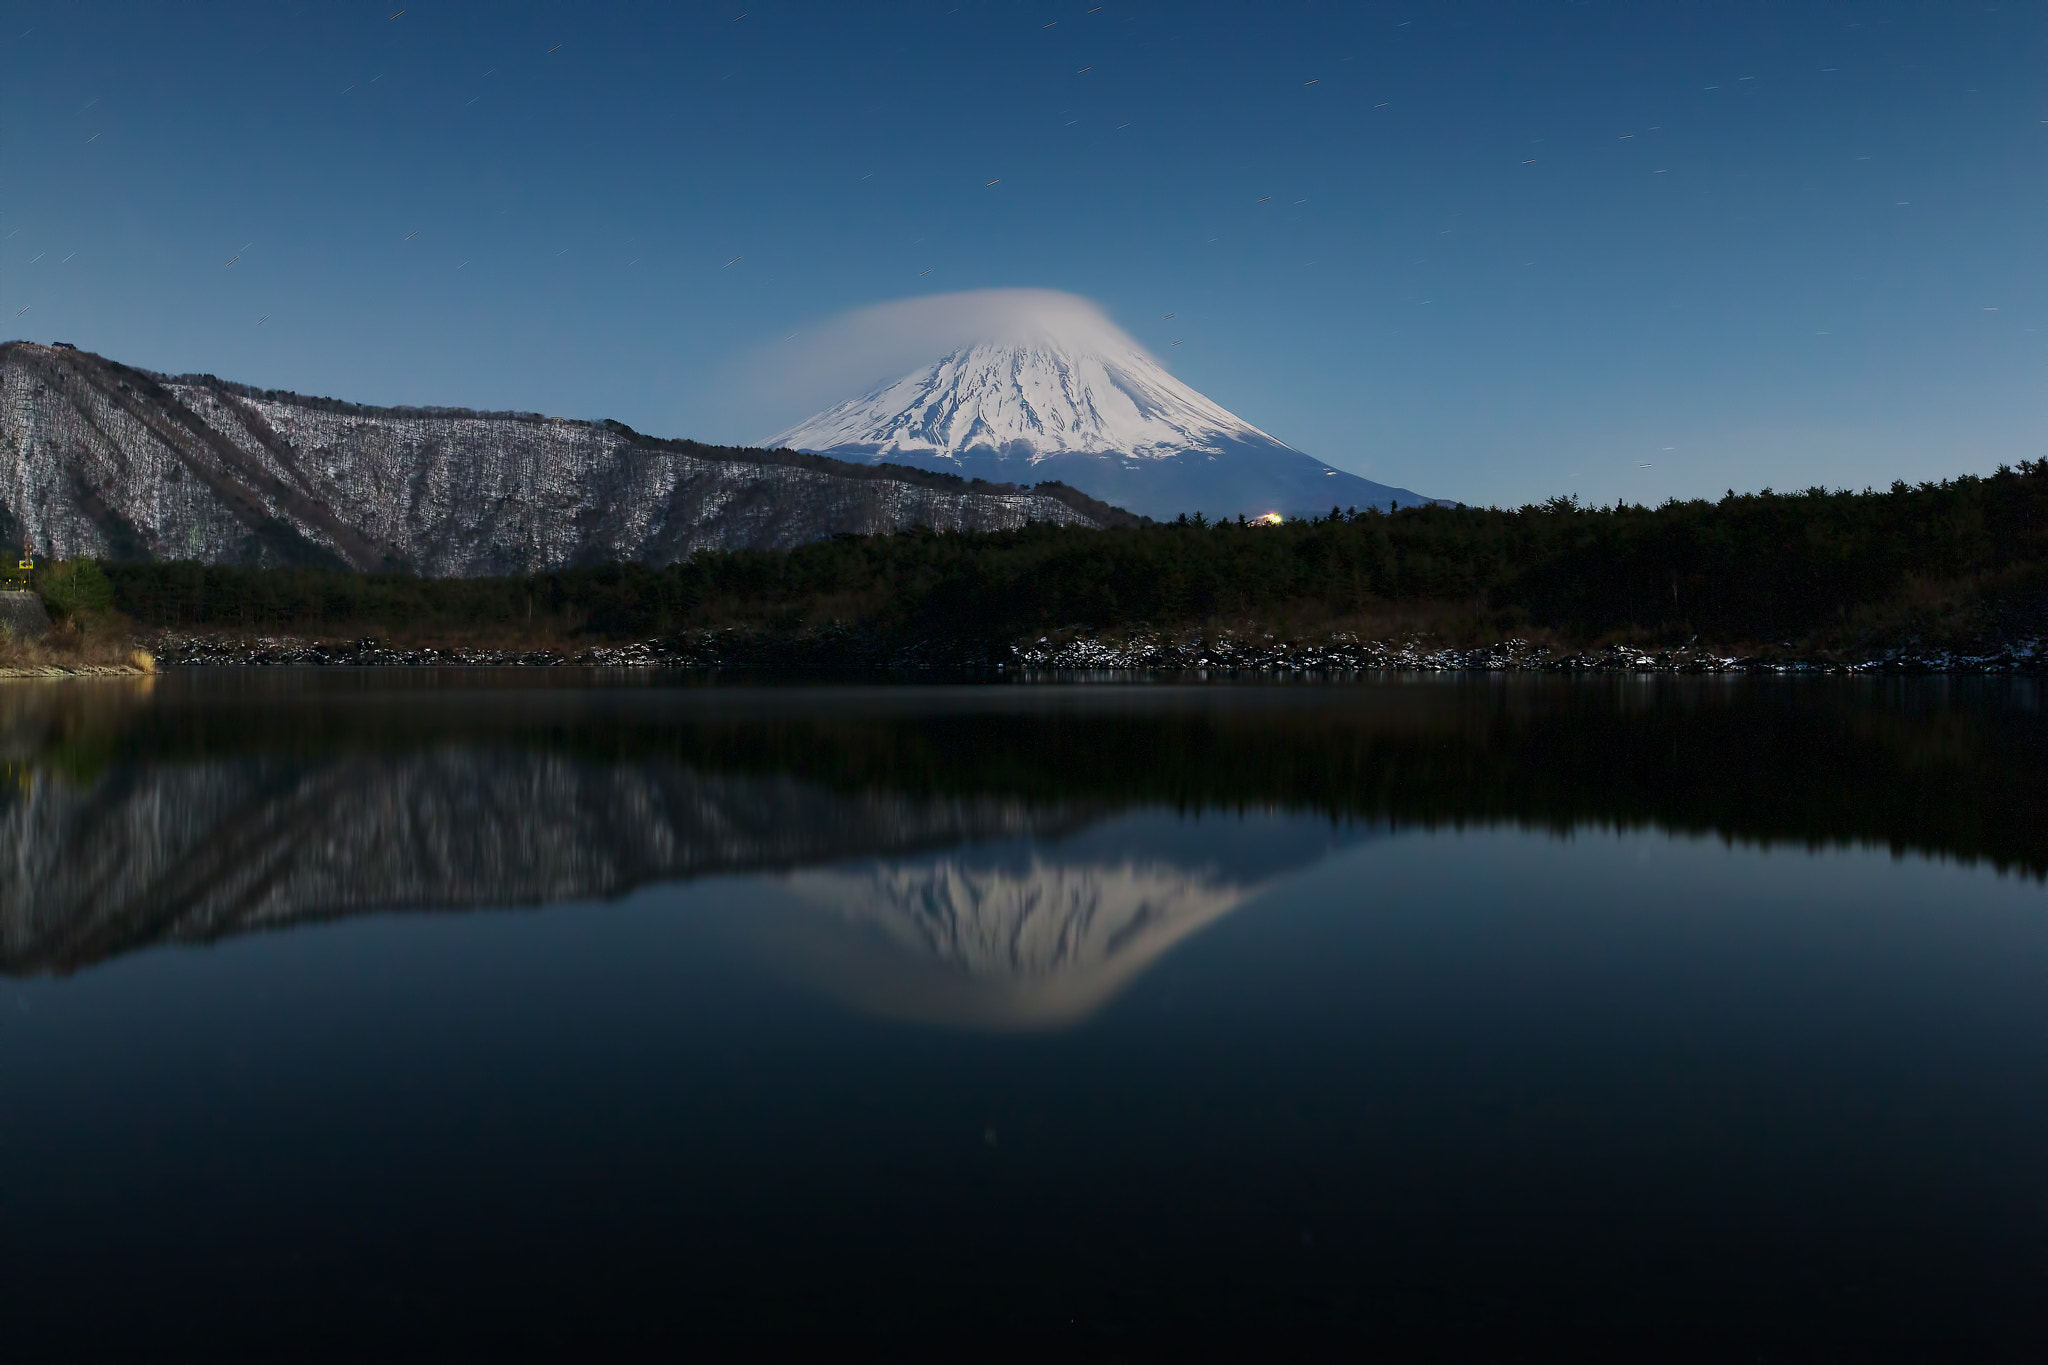 Photograph Mt.Fuji with Longhair by MIYAMOTO Y on 500px